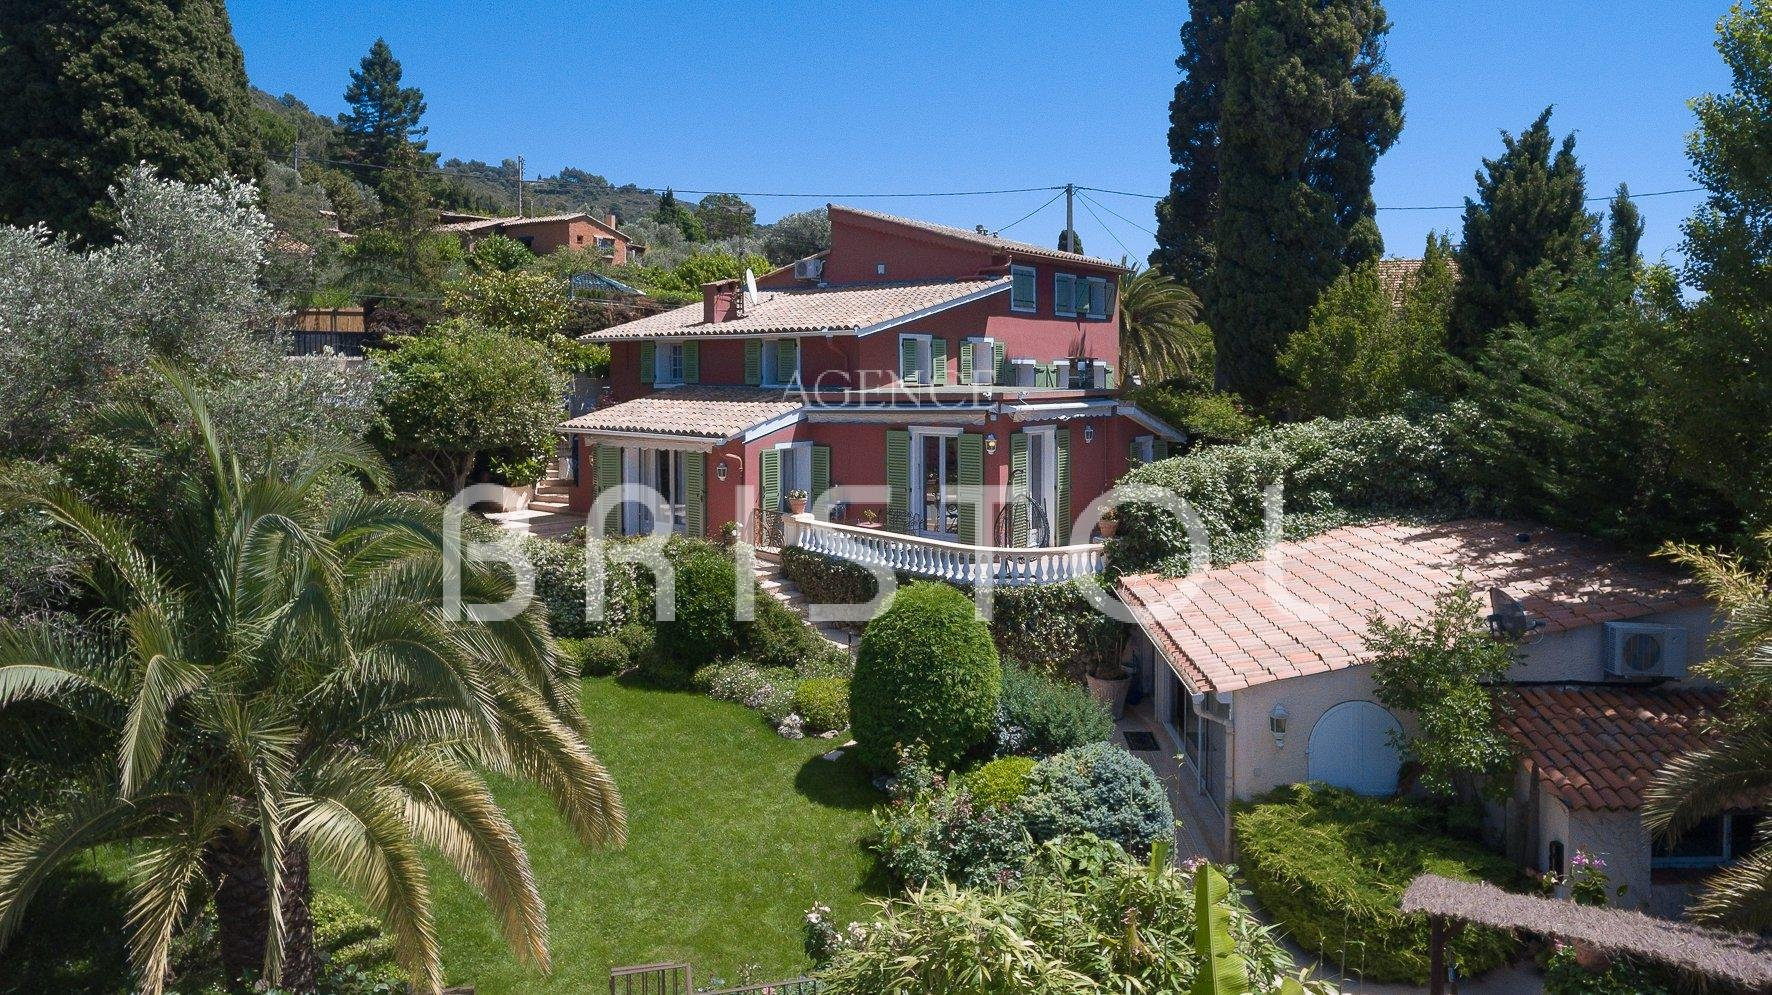 VILLEFRANCHE SUR MER CHARMING PROVENCAL PROPERTY FOR SALE POOL SEA VIEW